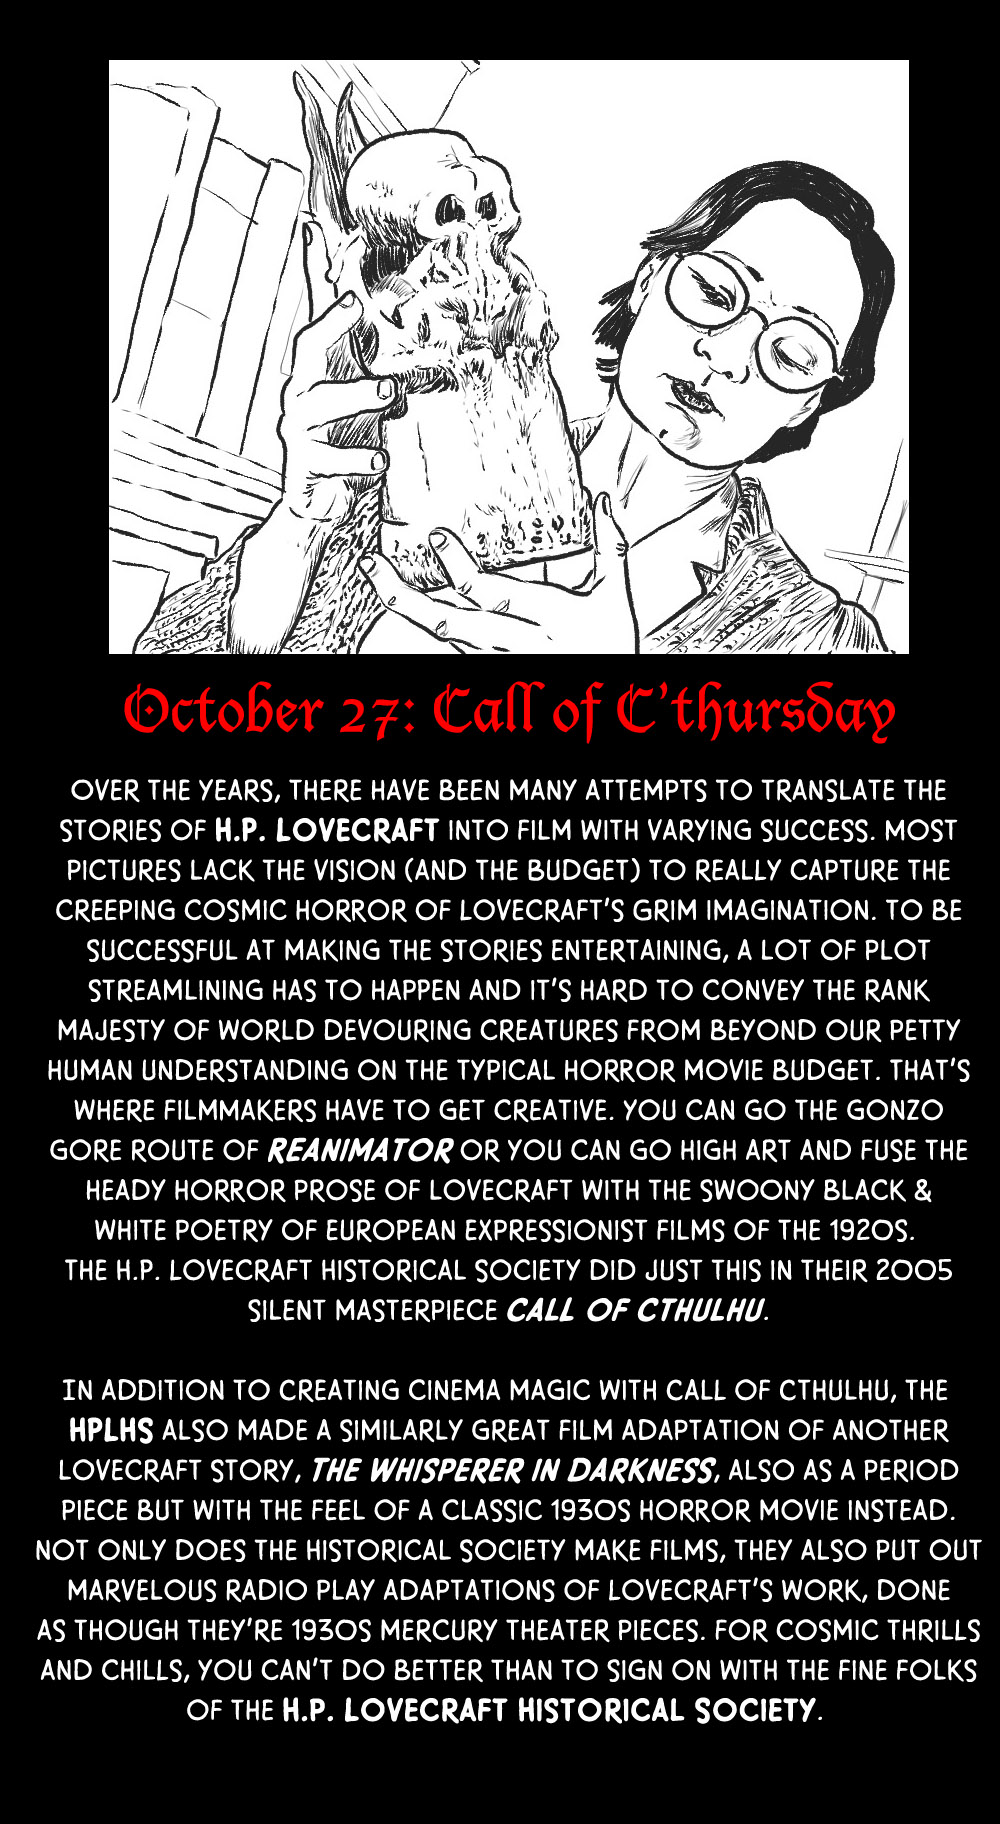 October 27: Call of C'thursday (with the HPLHS)